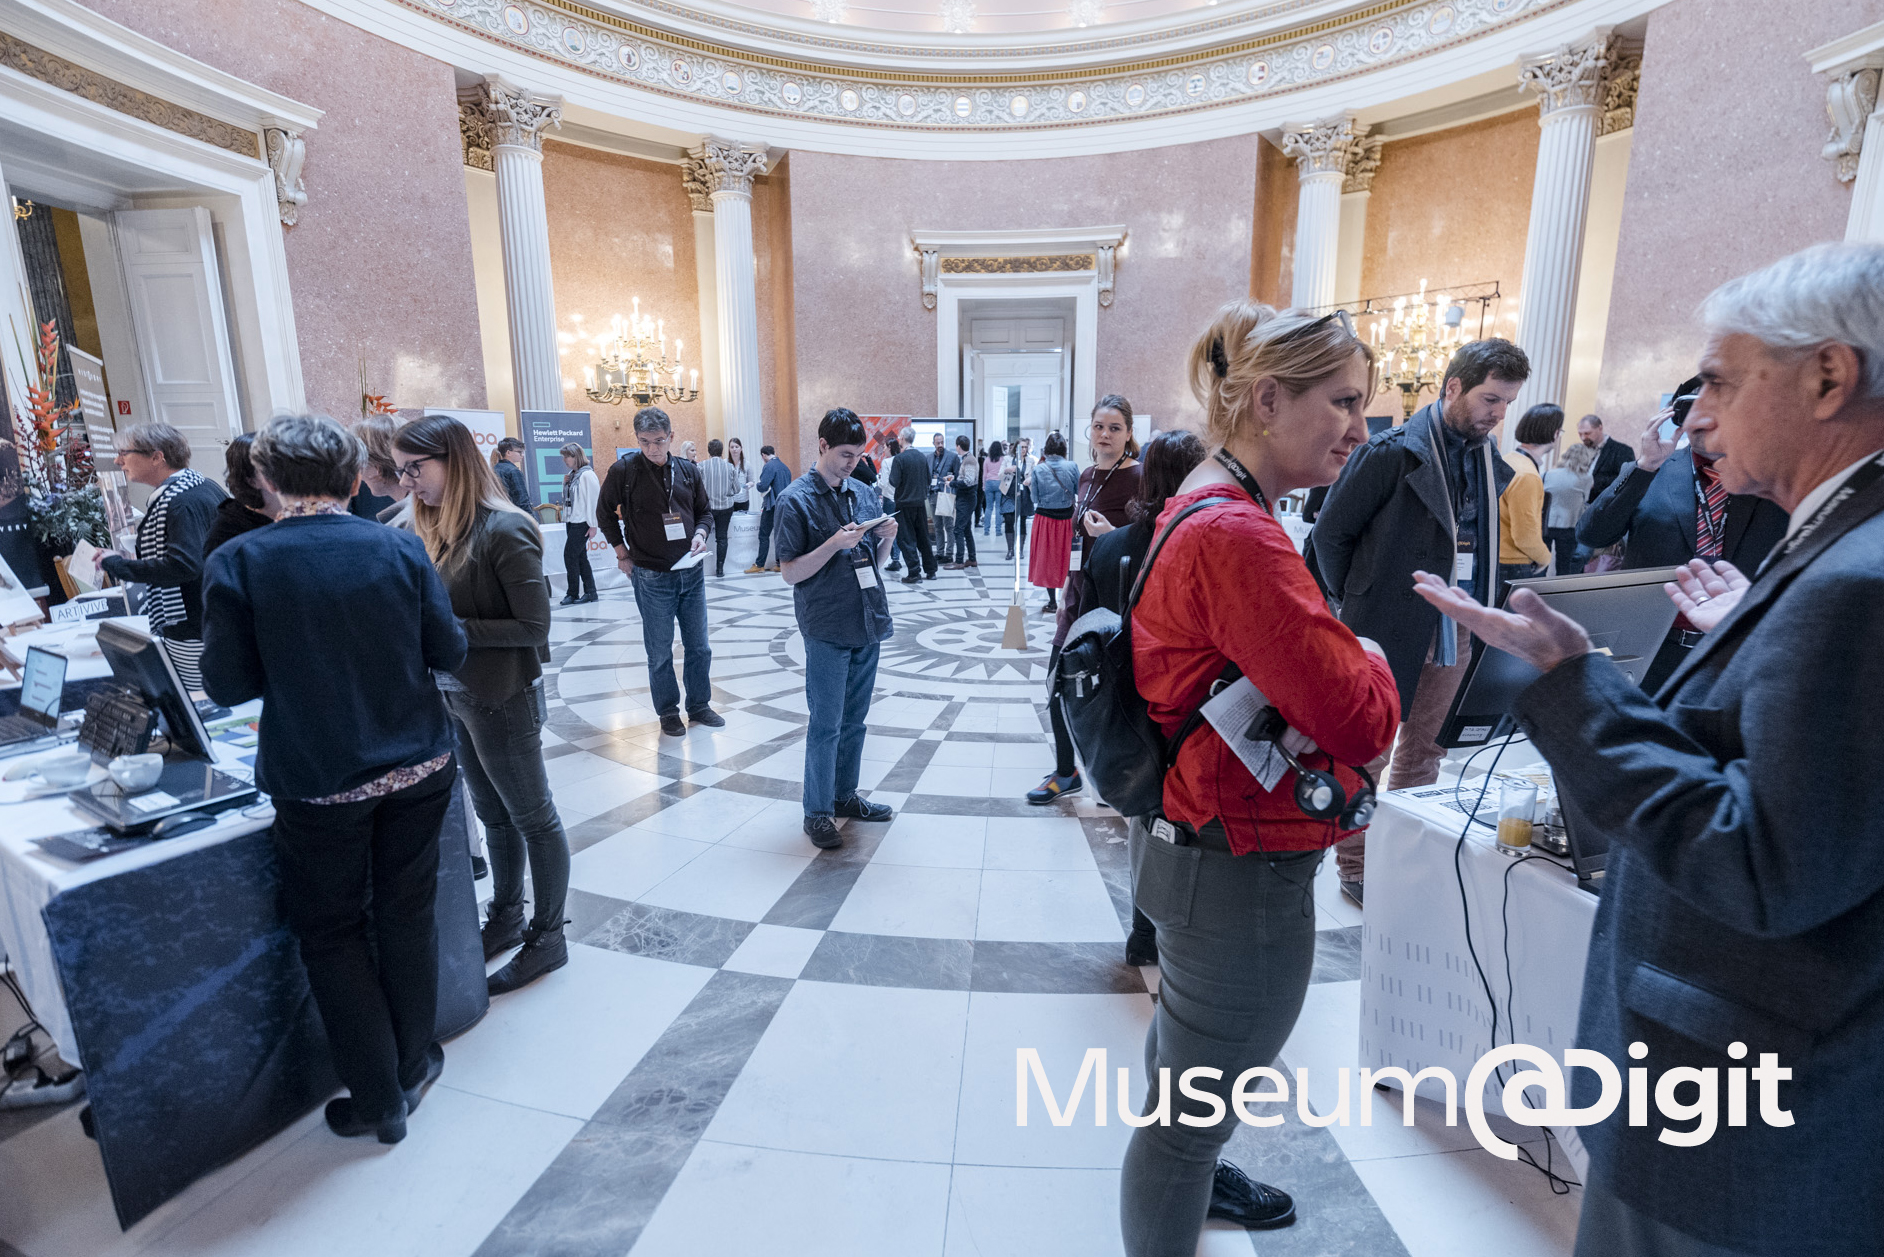 MuseumDigit 2019 – the Hungarian GLAM sector's public platform for digital development